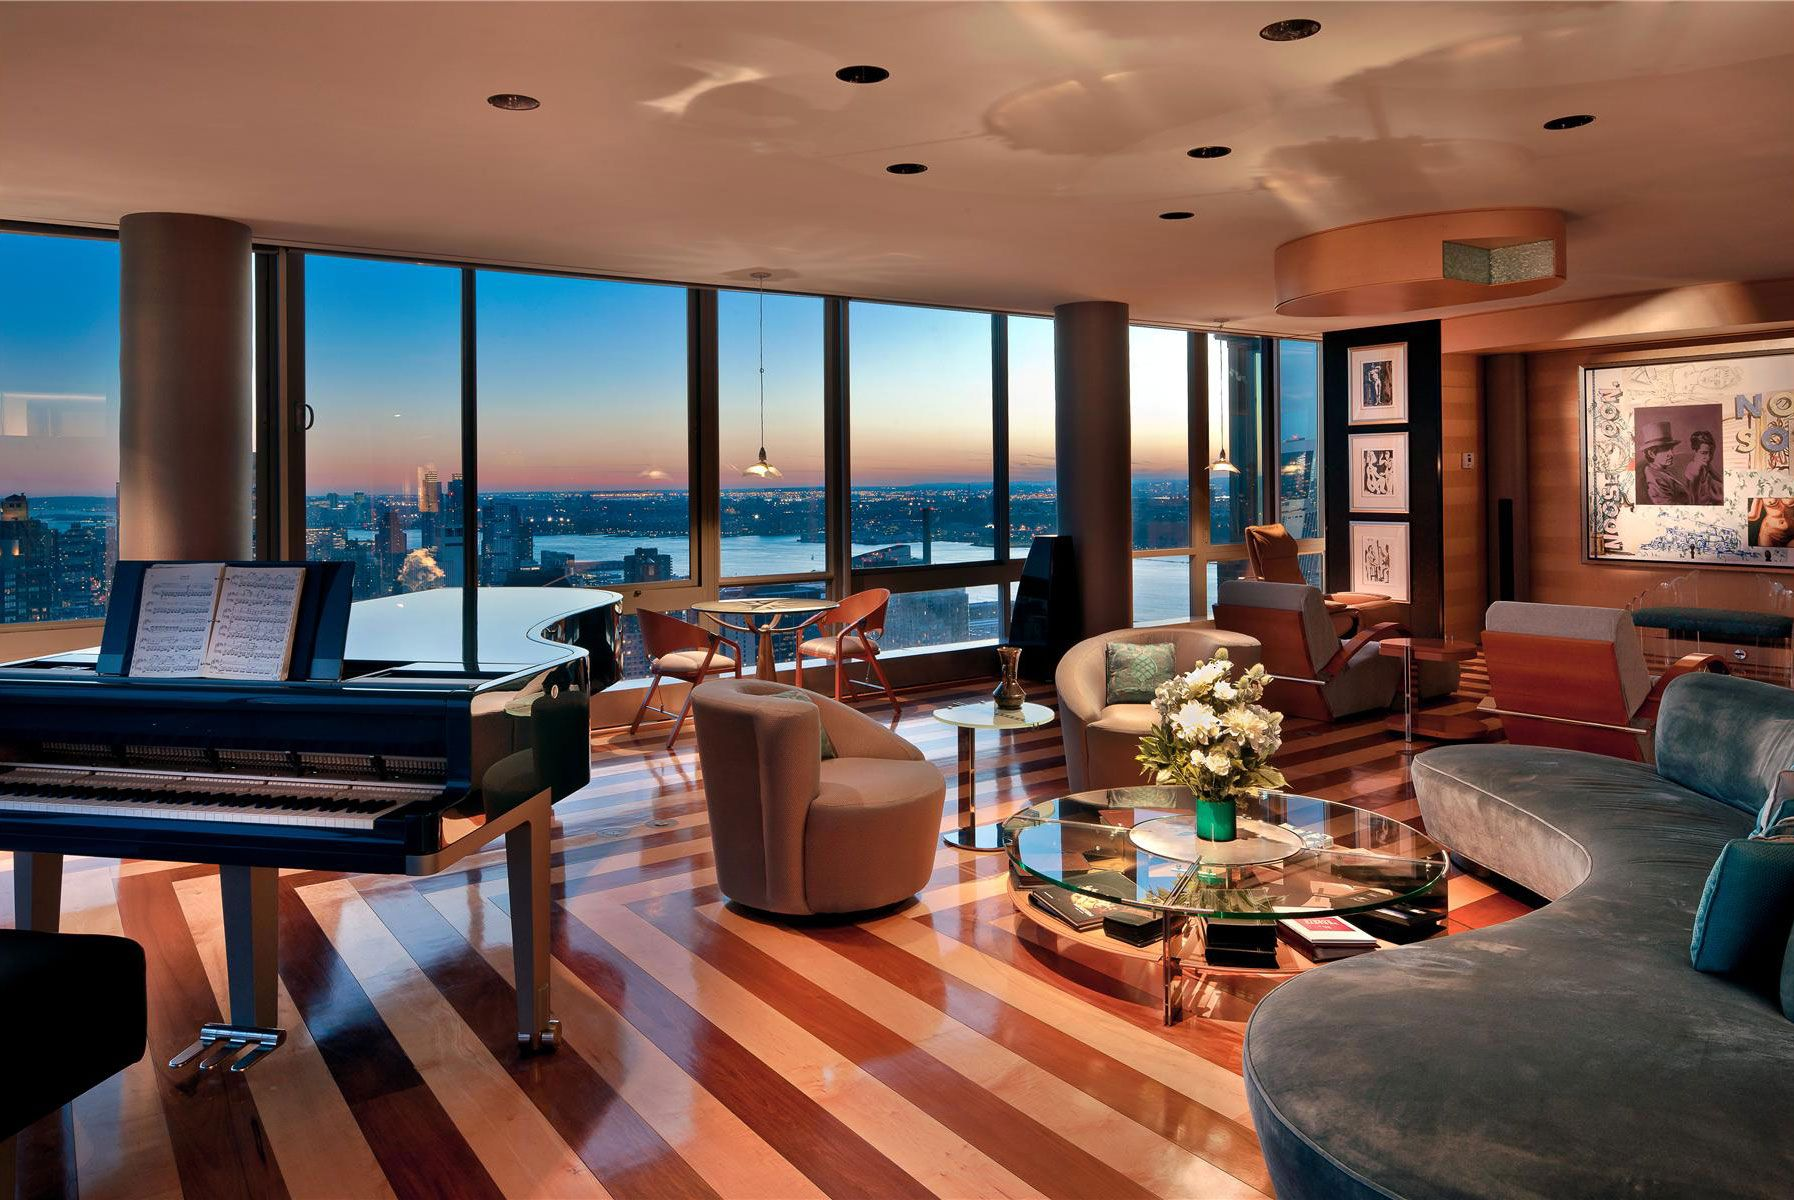 The gartner penthouse for sale in new york city for Luxury new york city apartments